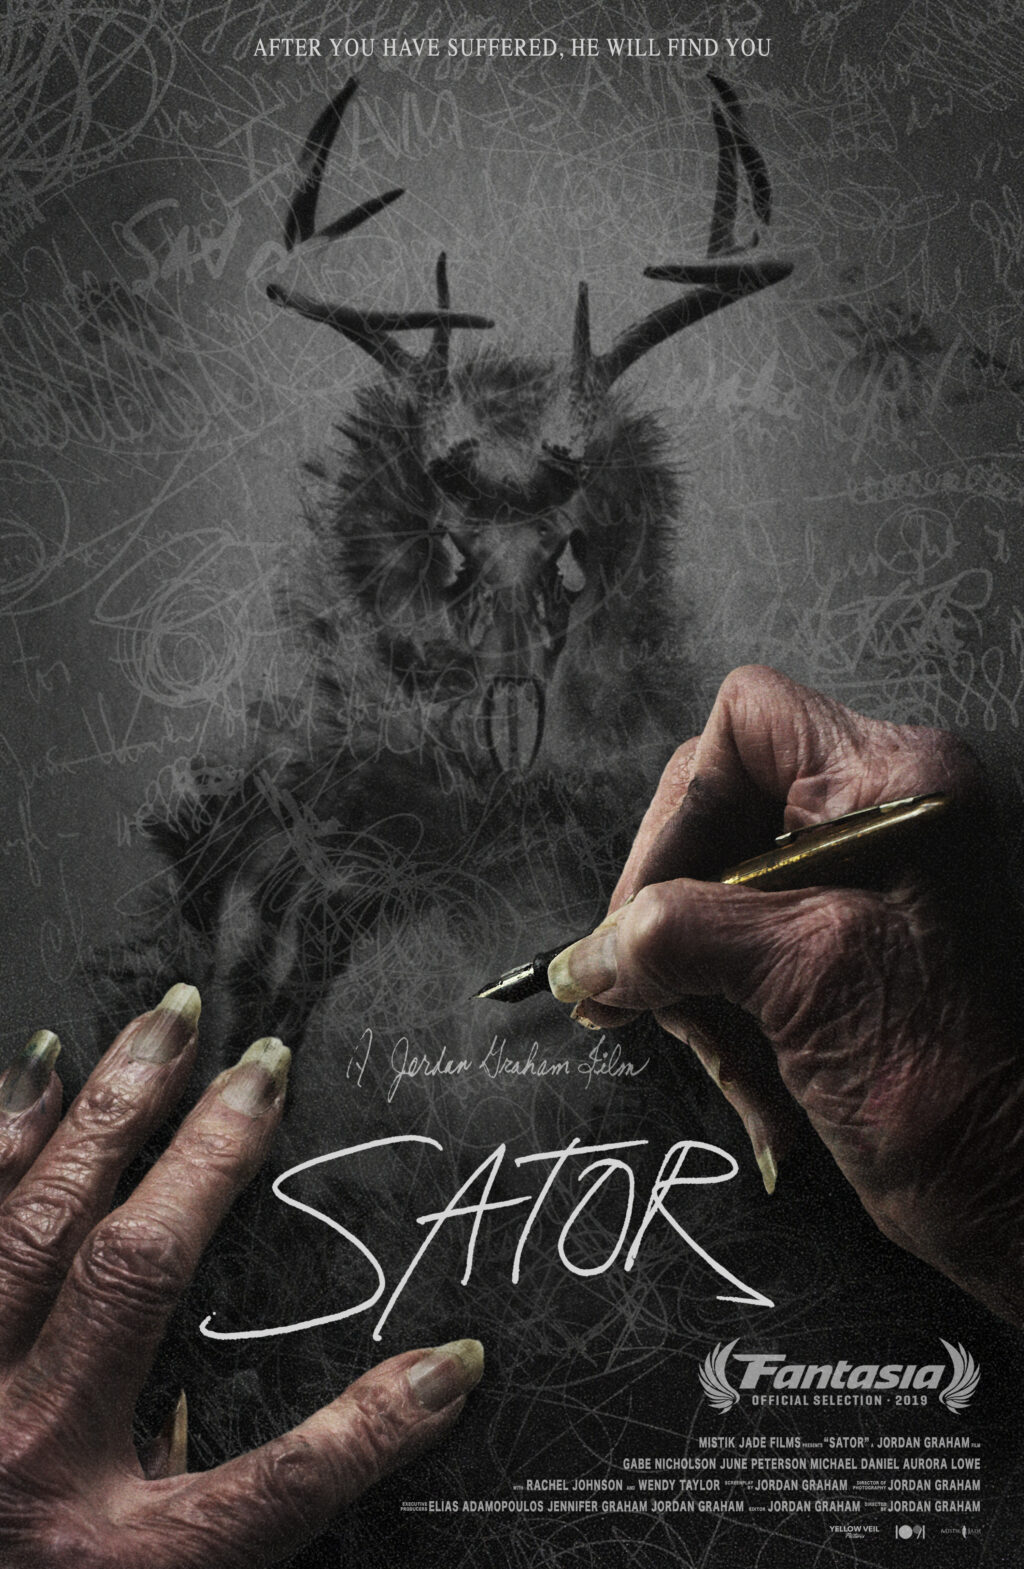 Sator Poster 1 1024x1569 - Our Virtual Panel Series Continues Tonight @ 6 PM (PST) with Director & Cast of SATOR, Based on Real-Life Experiences